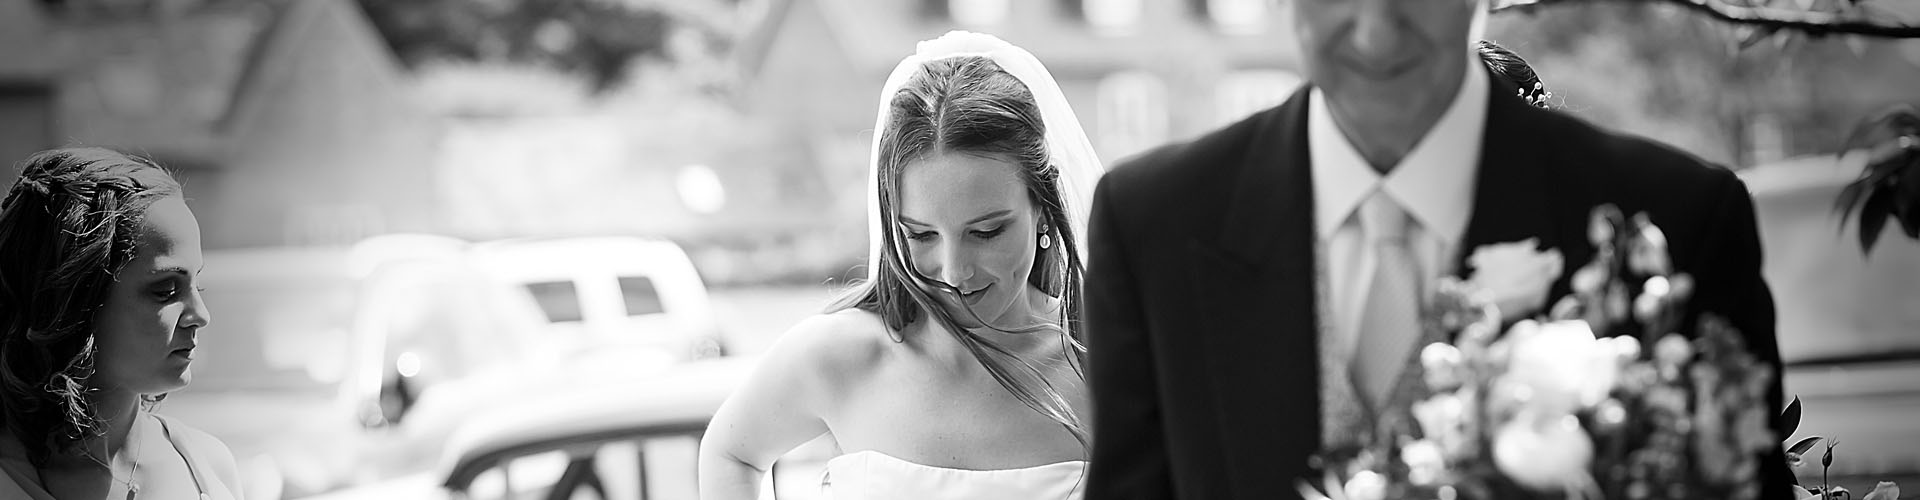 wedding photographer essex 75